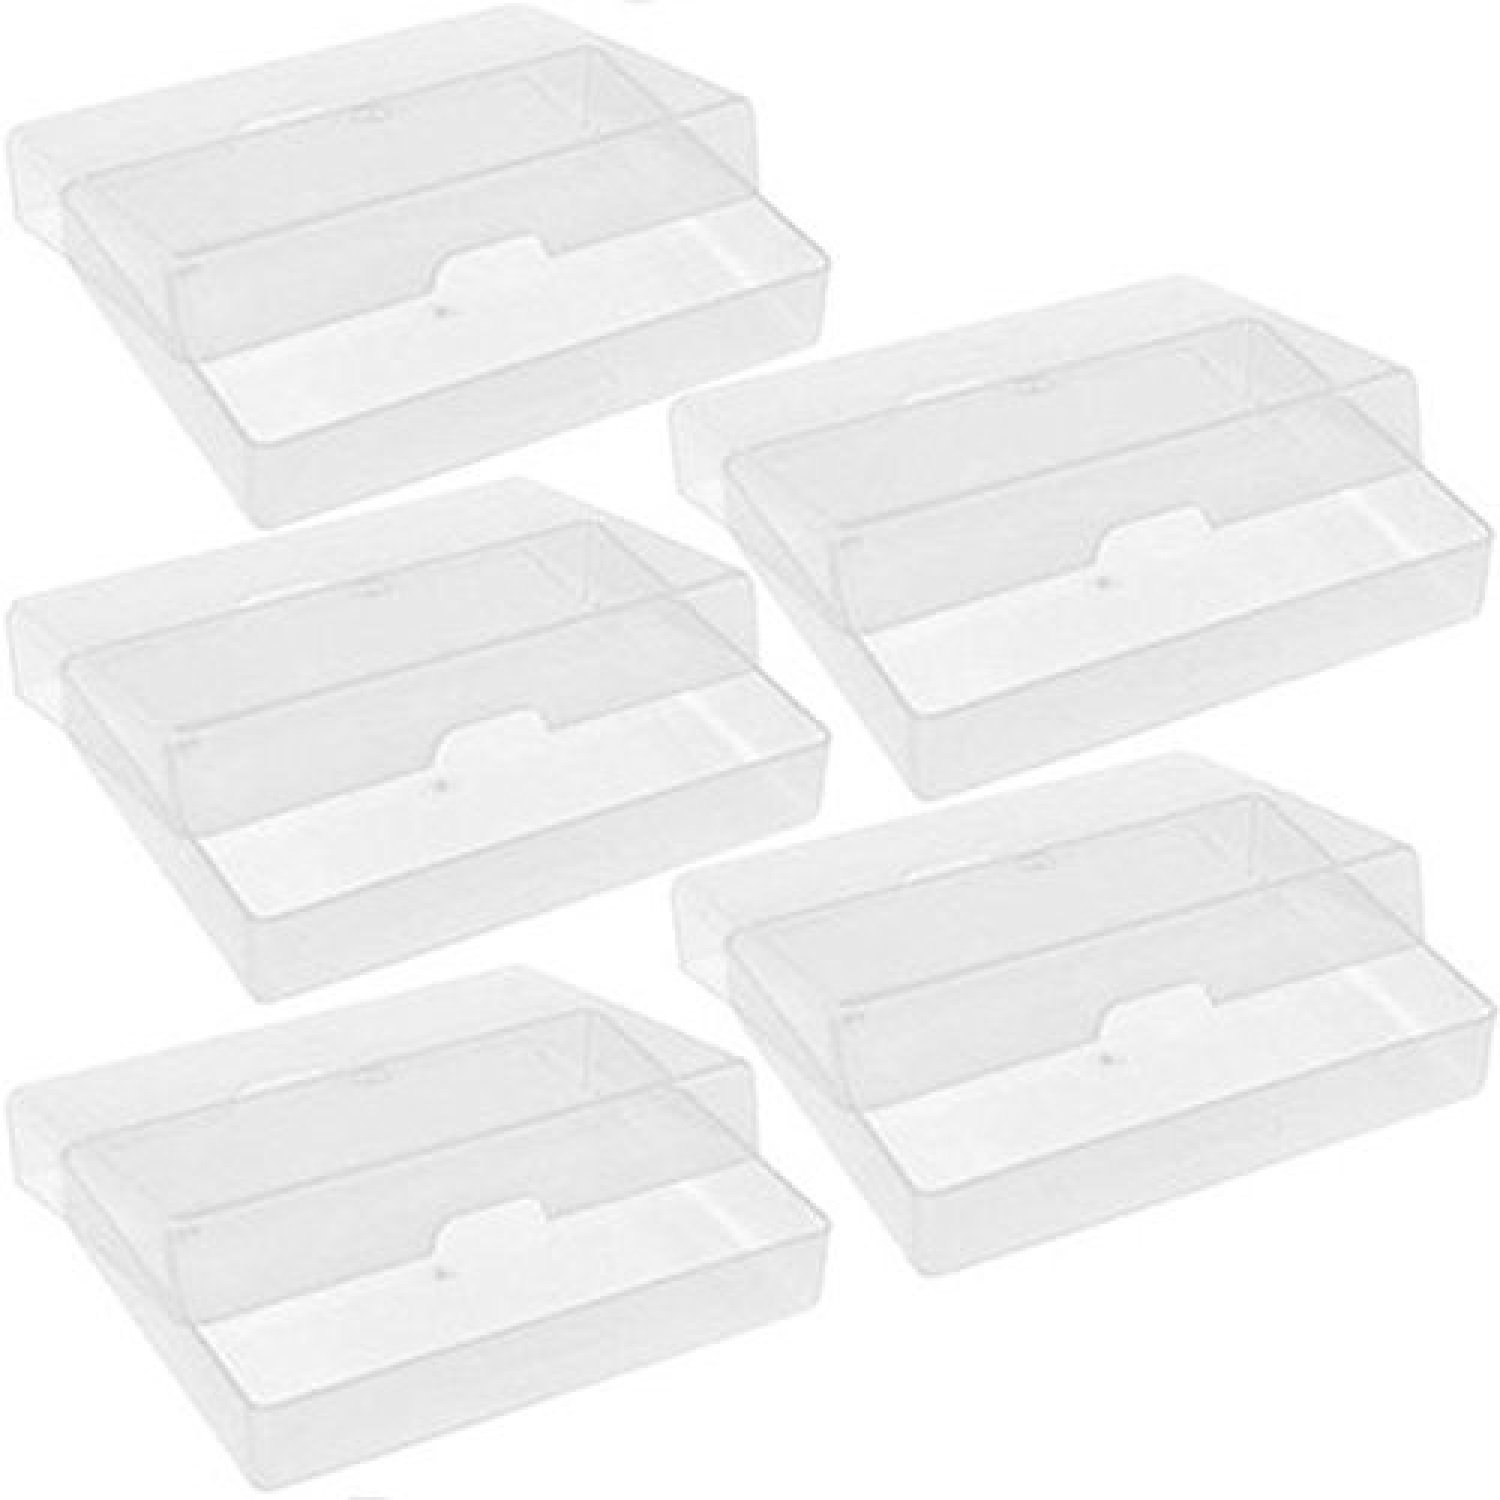 5 X NEW ATC CLEAR PLASTIC STORAGE BOX PLAYING CARDS CASE BUSINESS ...